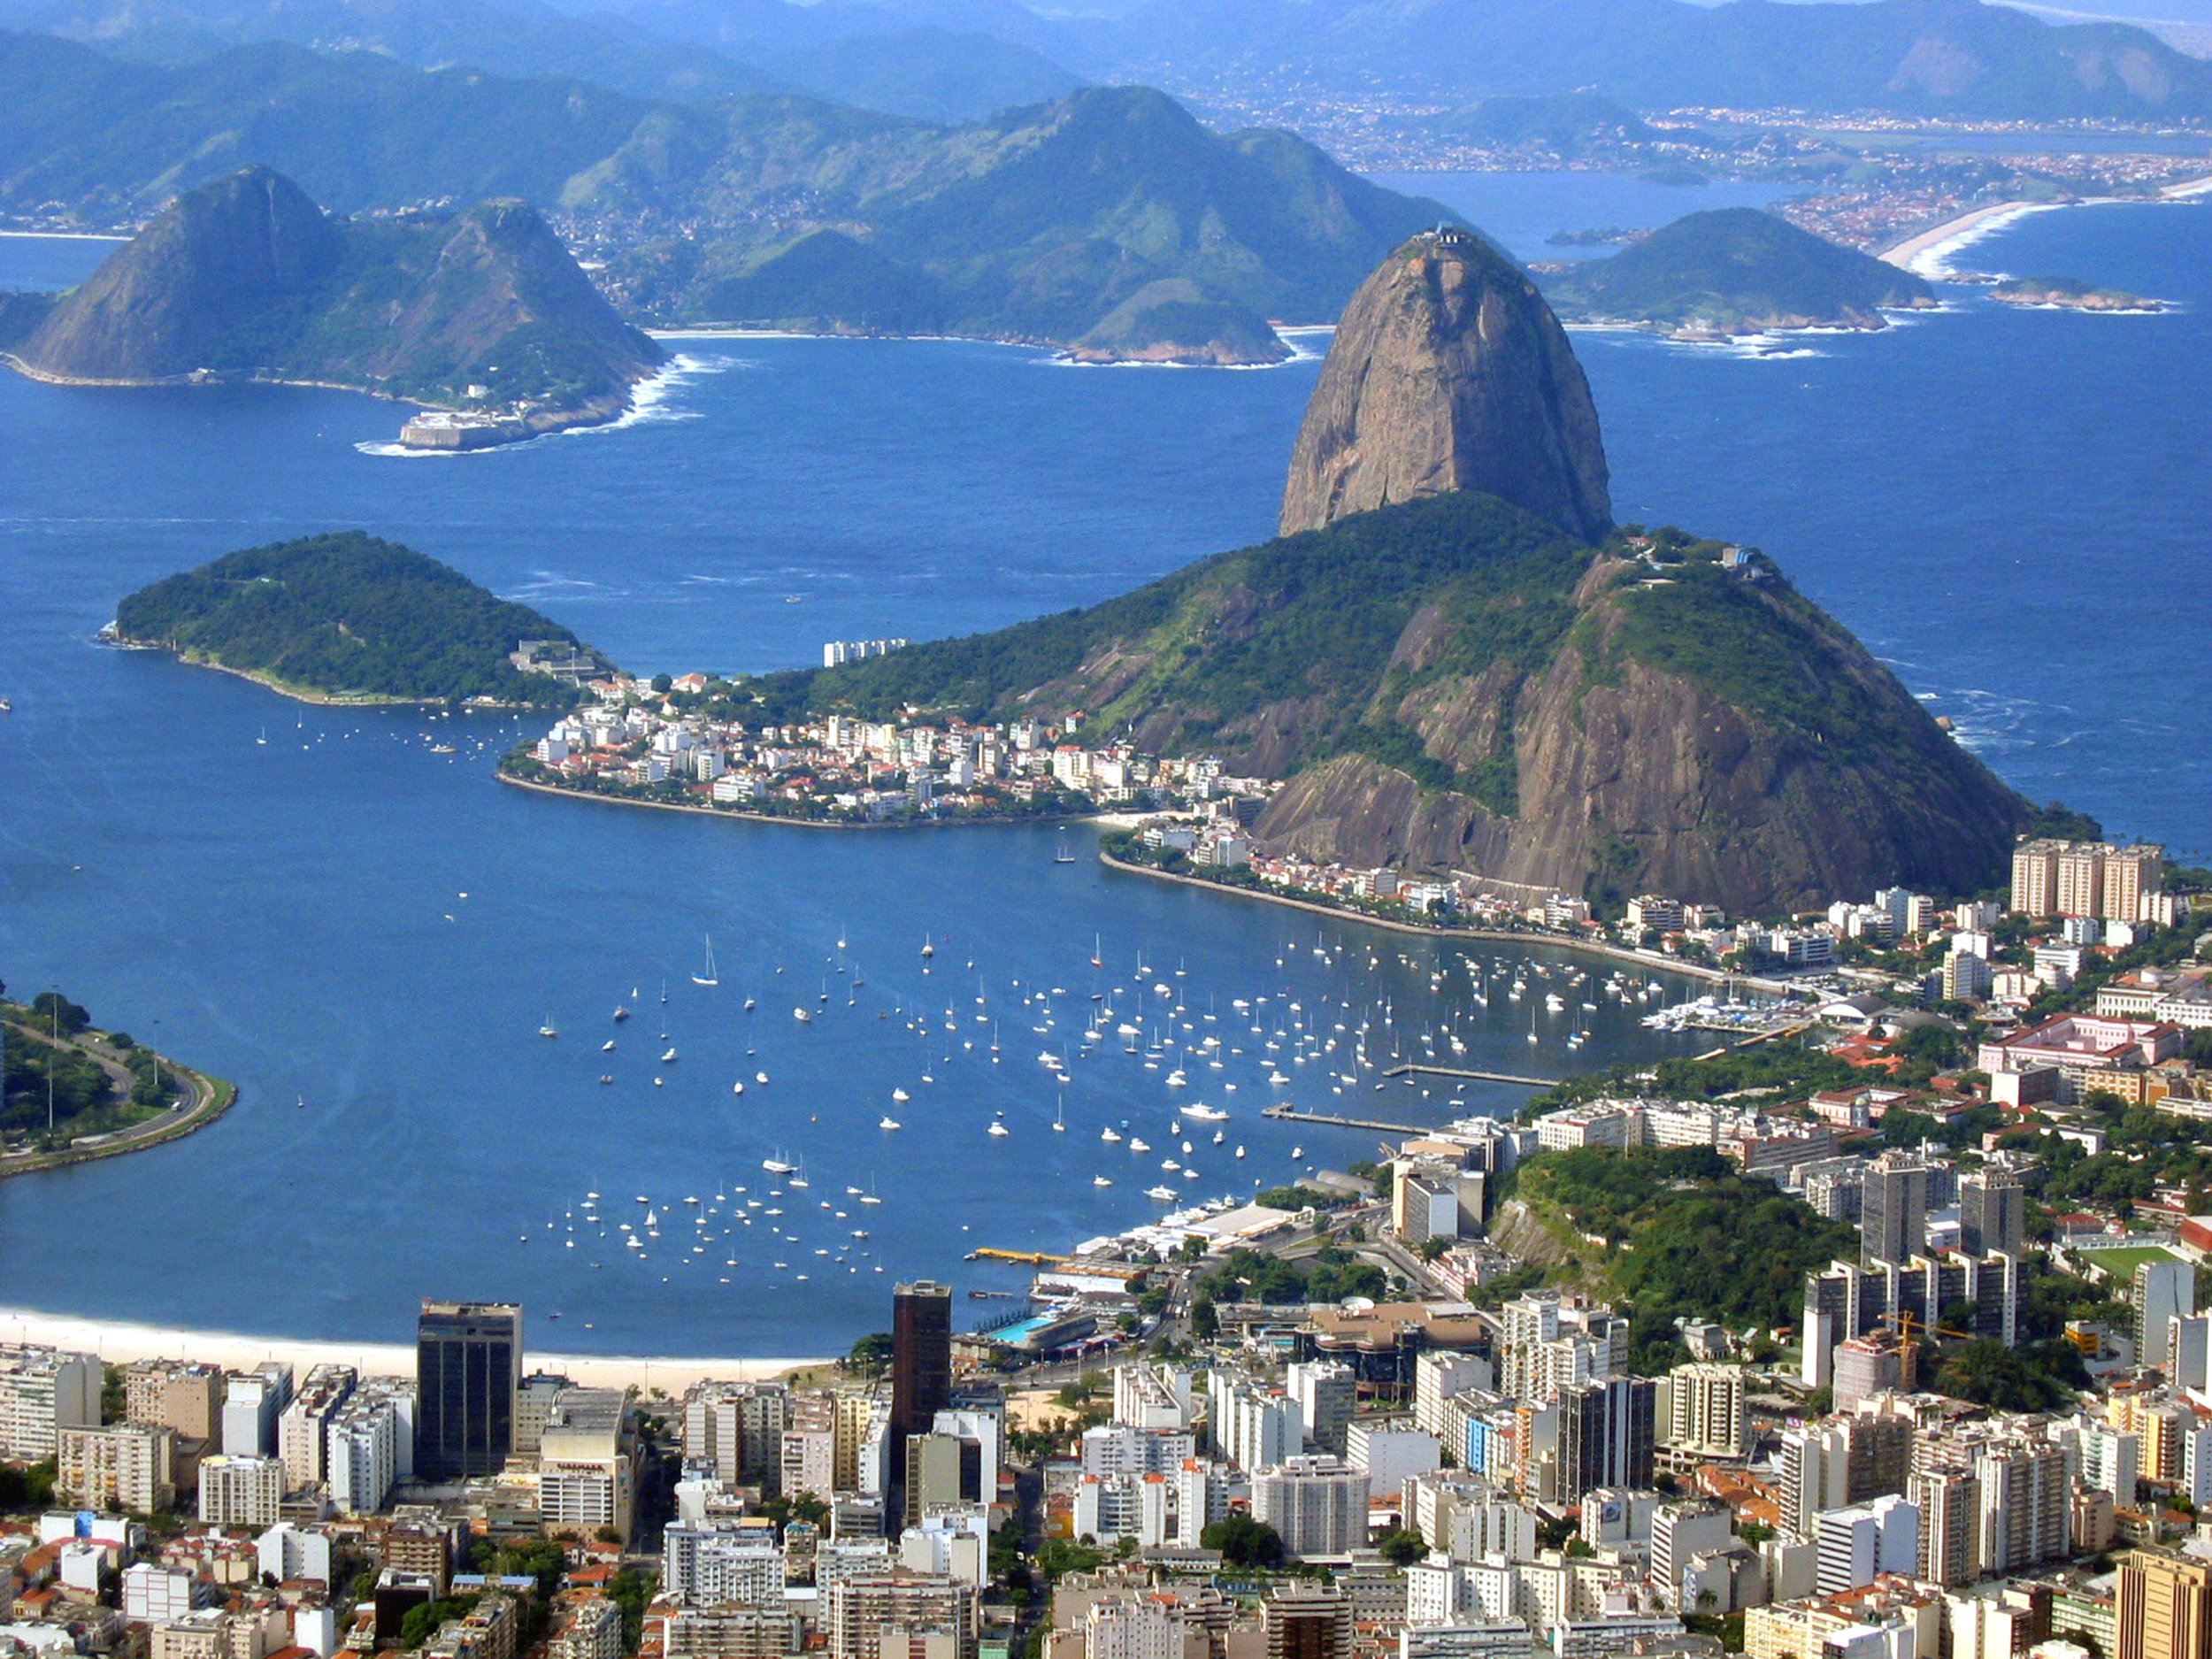 Image provided by Approaching Brazil.